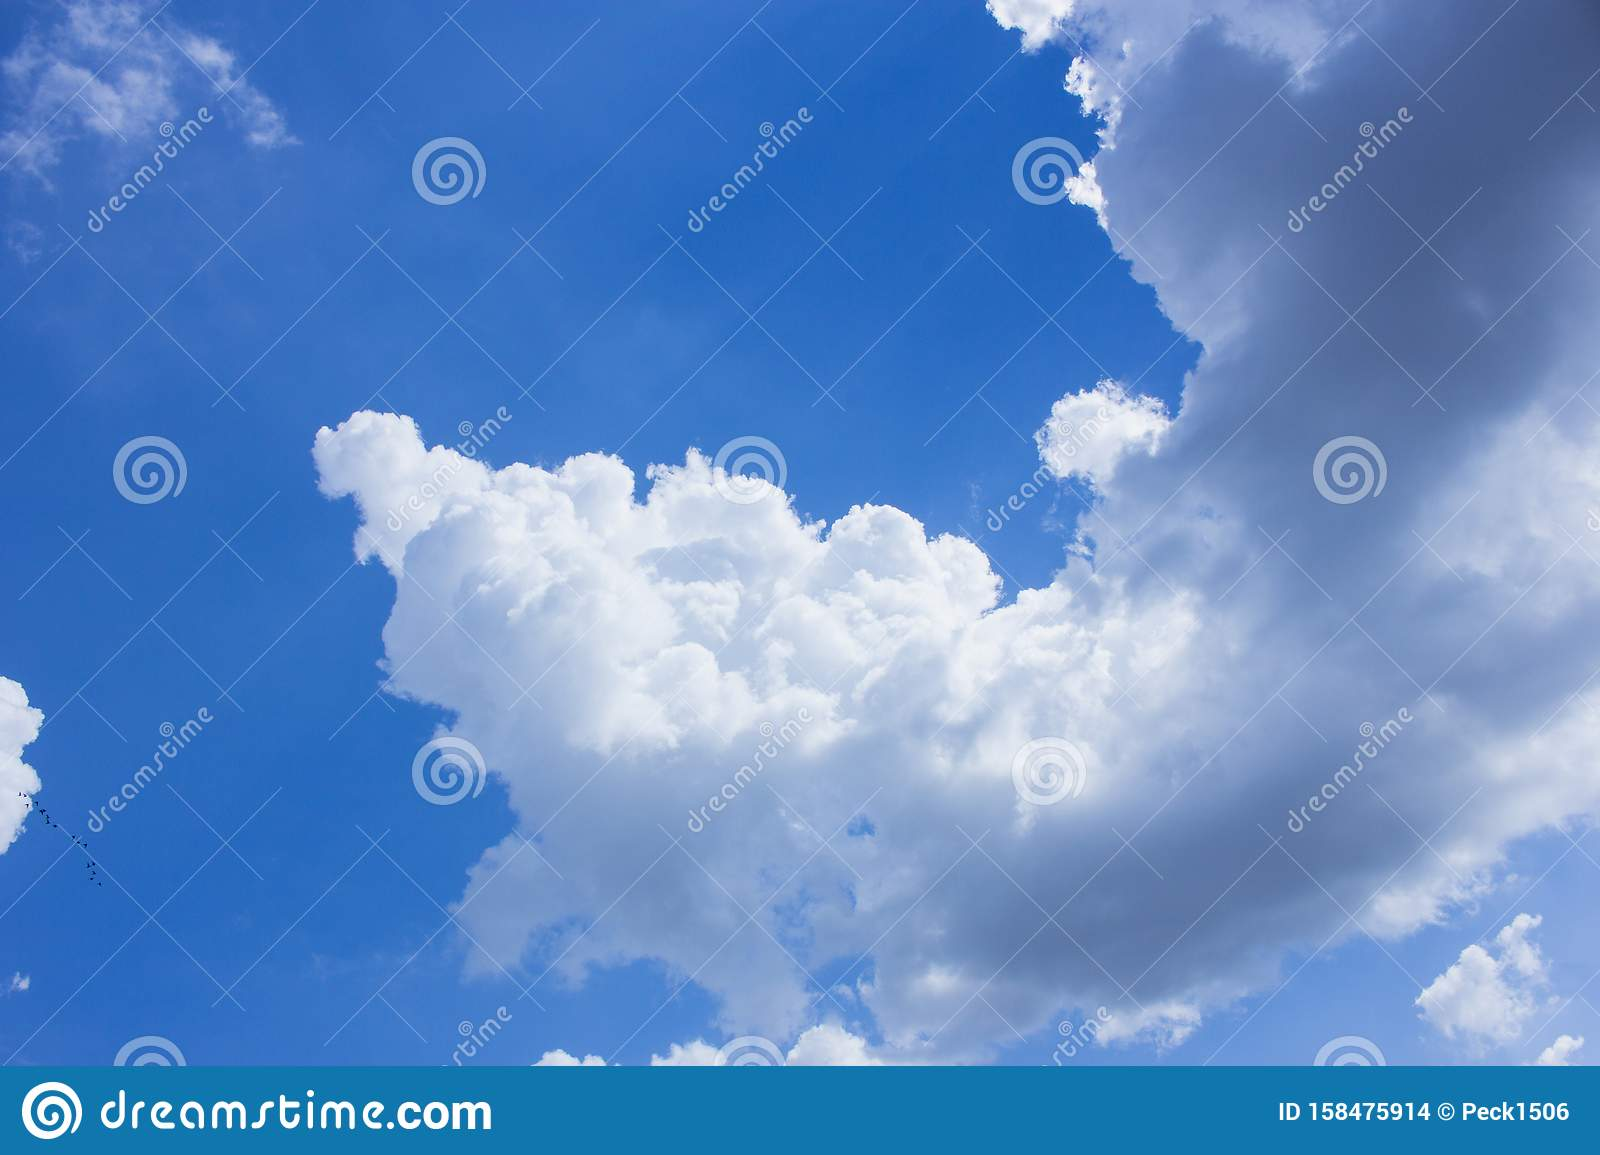 The cloud and blue sky, the cloud and sunlight